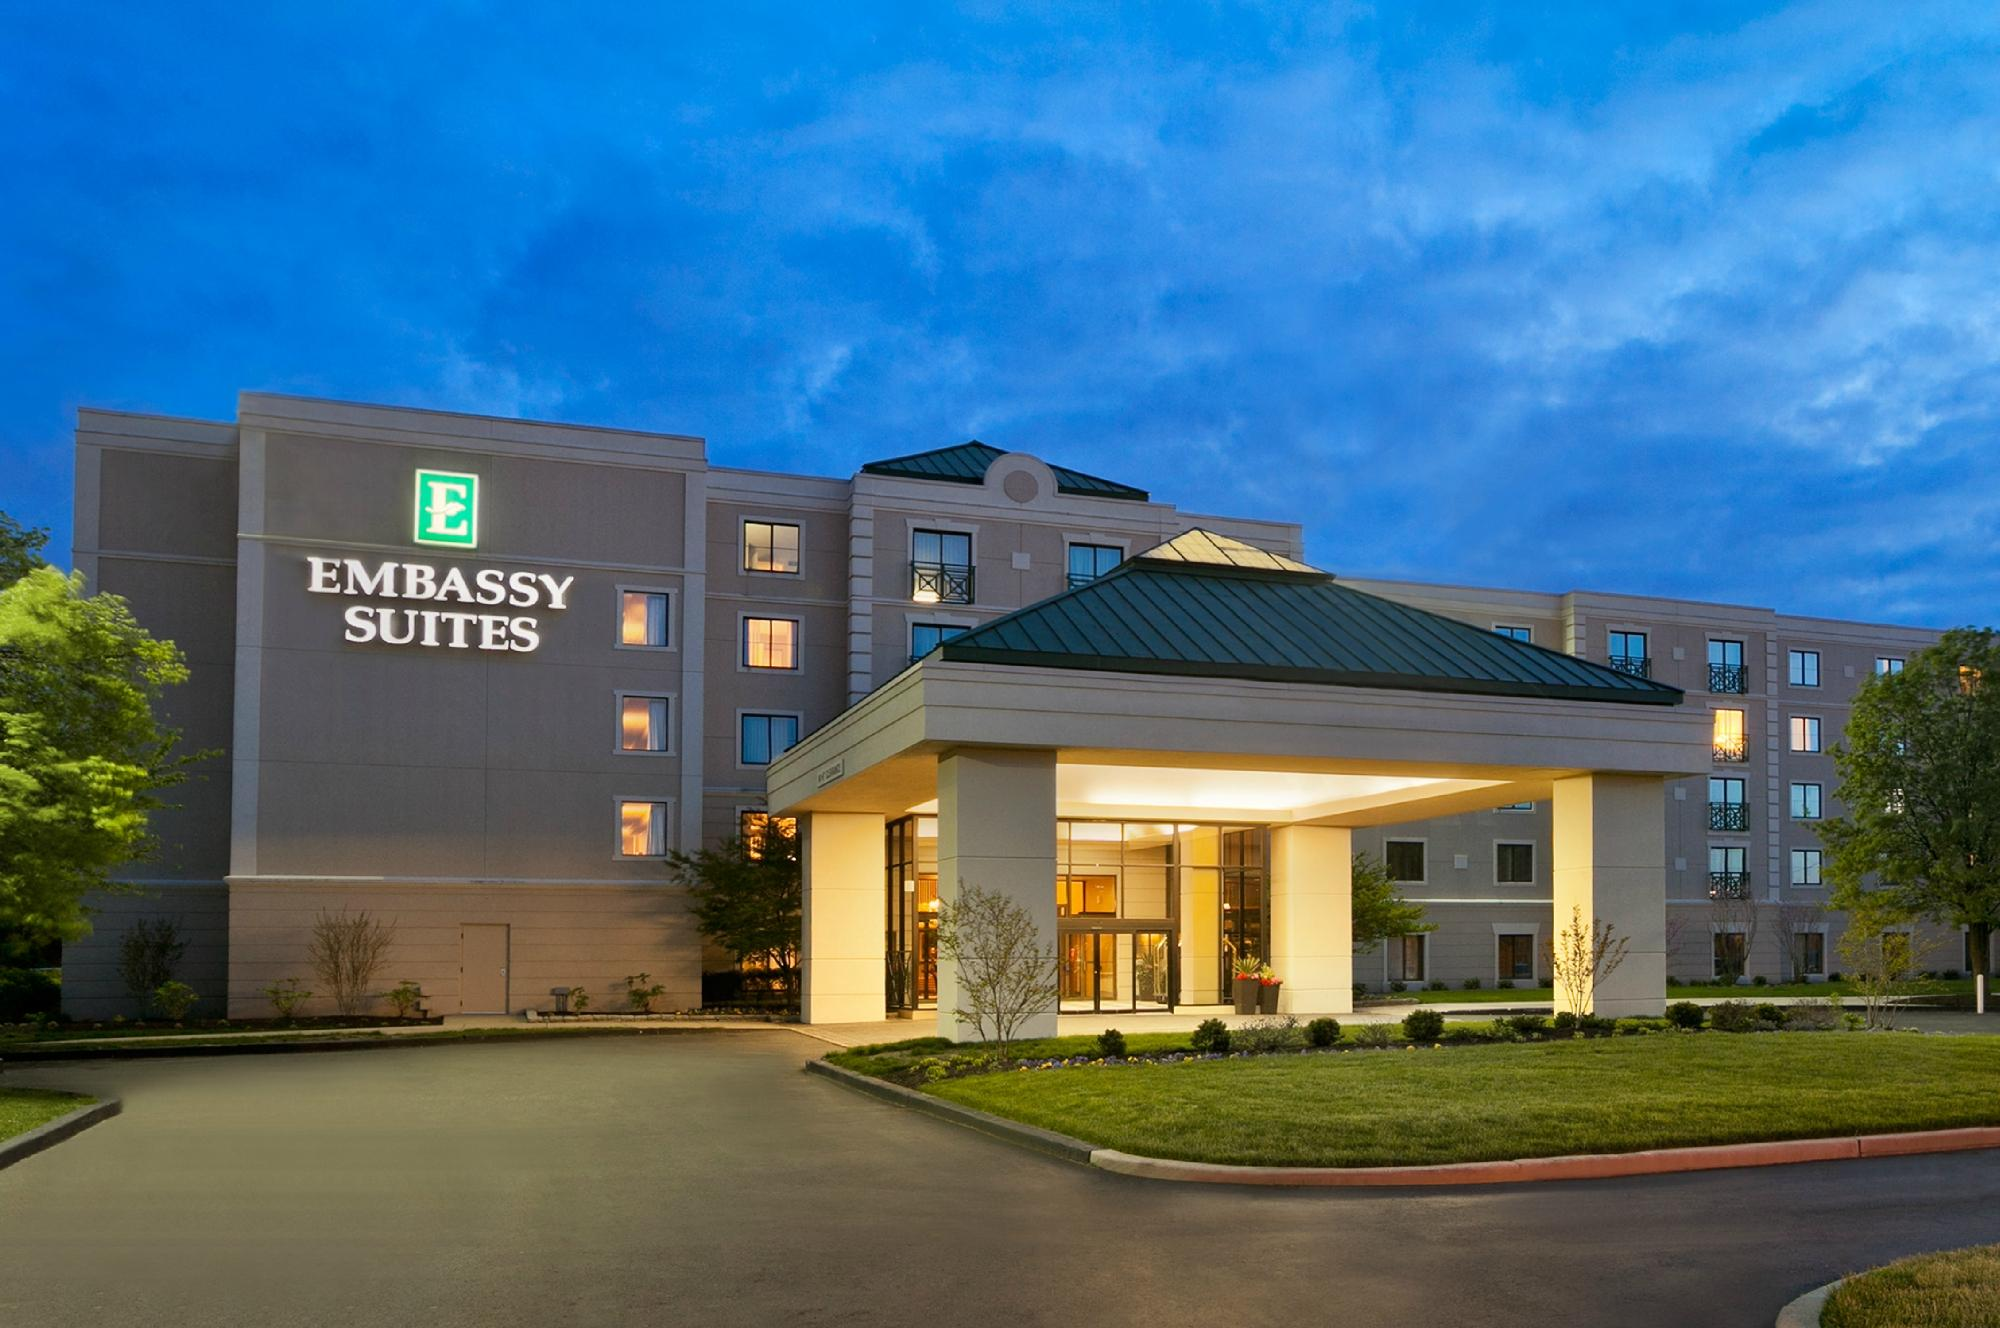 Embassy Suites by Hilton Philadelphia - Airport